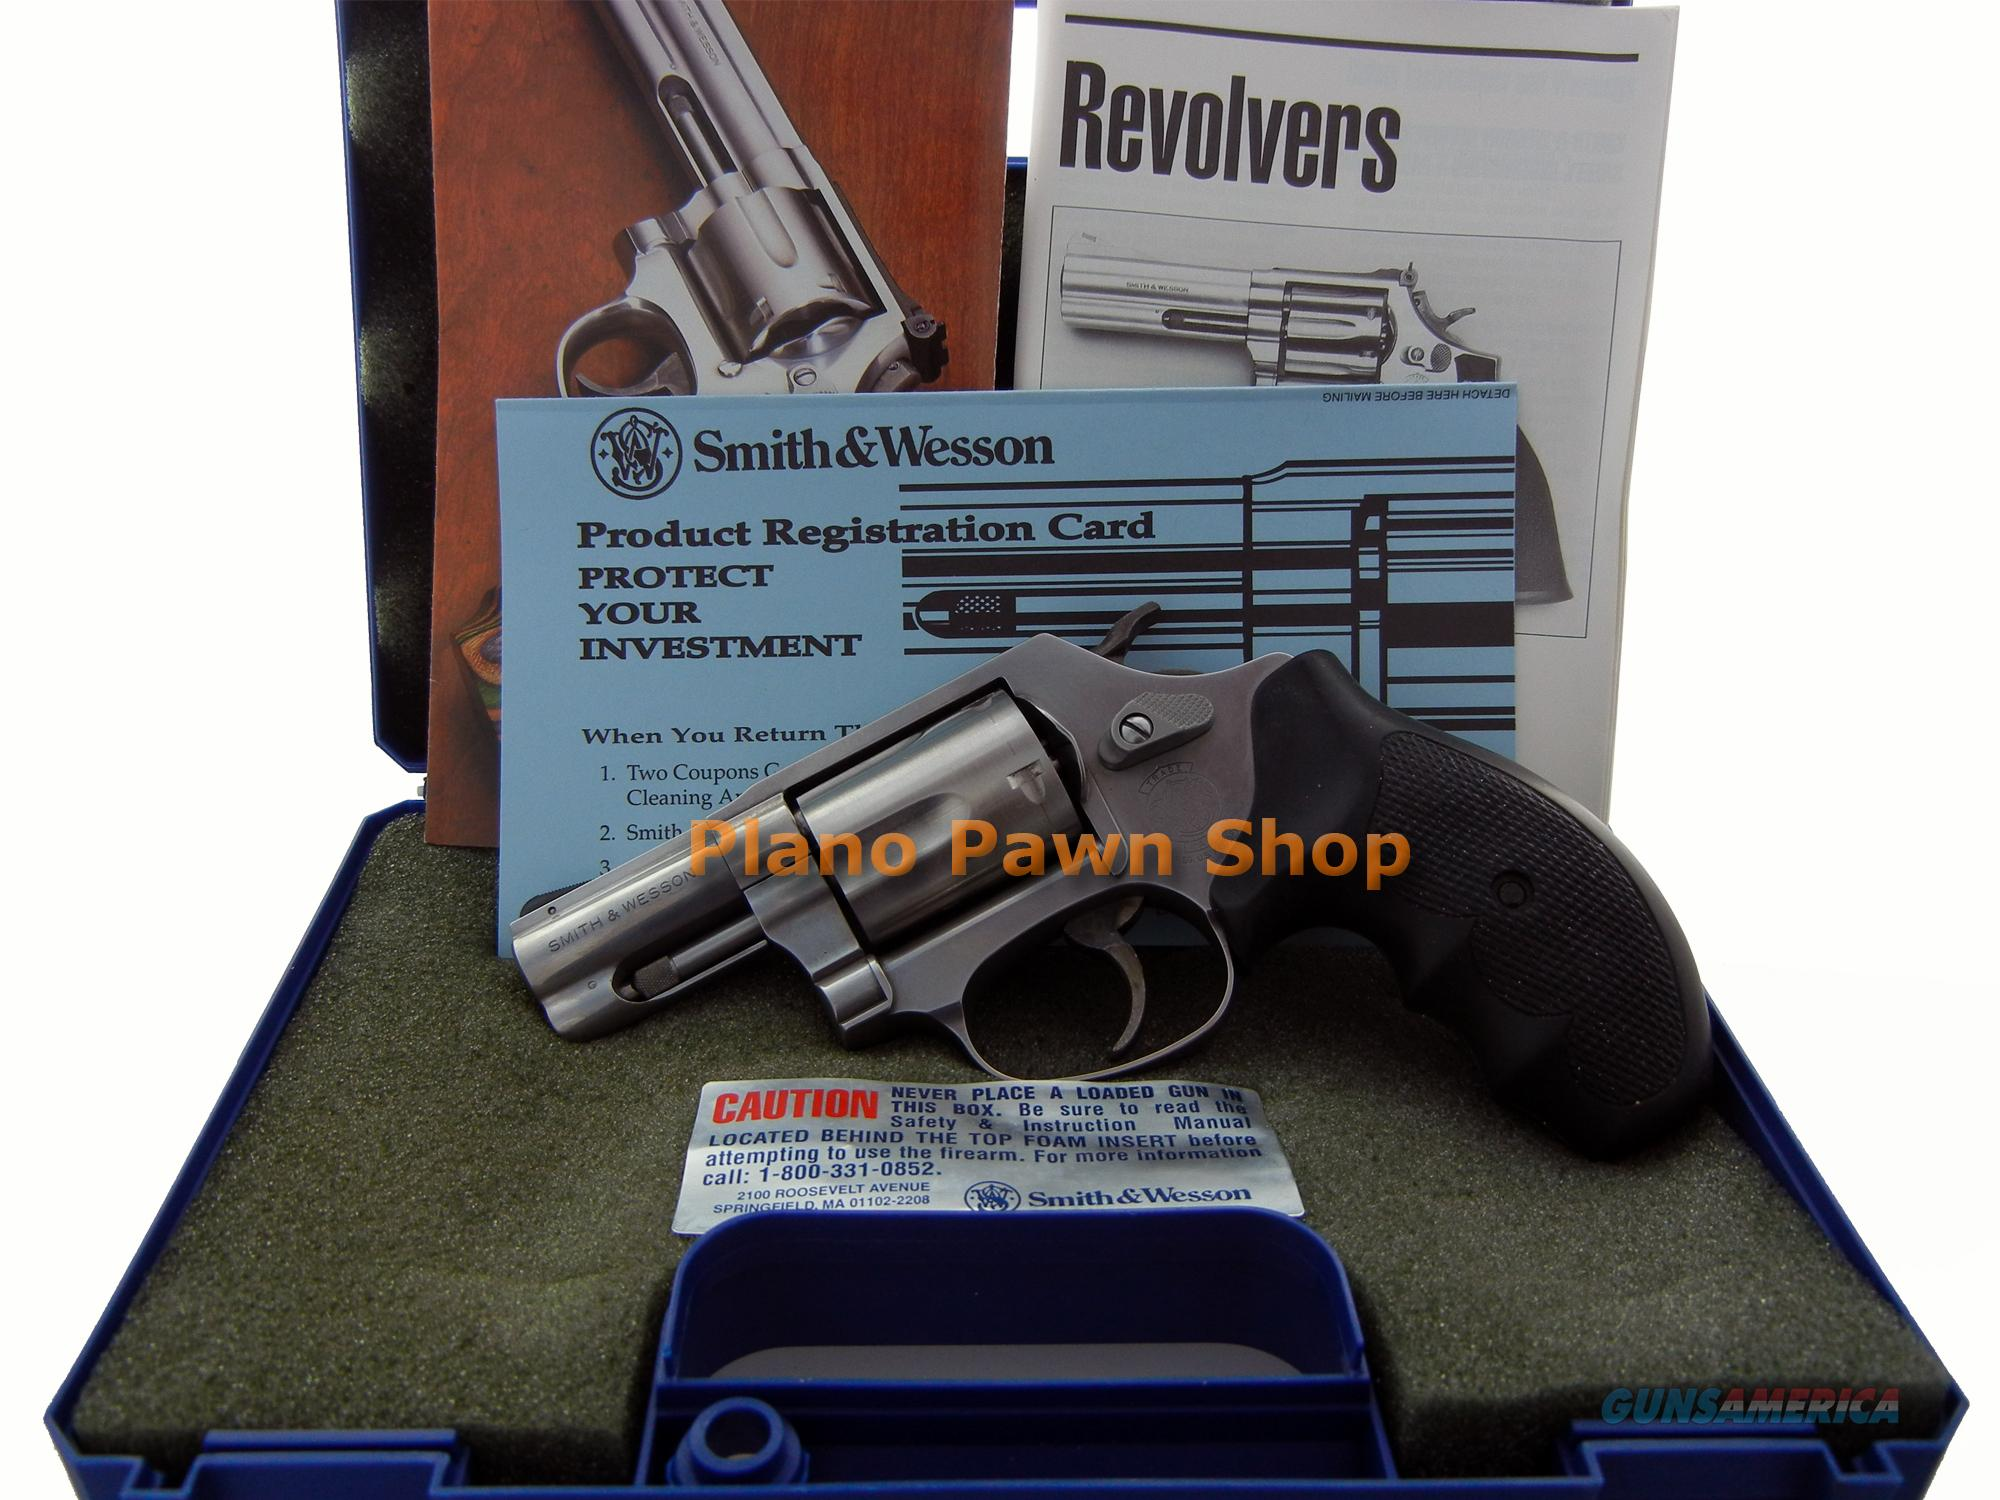 Smith and Wesson Stainless Steel Model 60-9 .357 MAG LIKE NEW in Case  Guns > Pistols > Smith & Wesson Revolvers > Full Frame Revolver